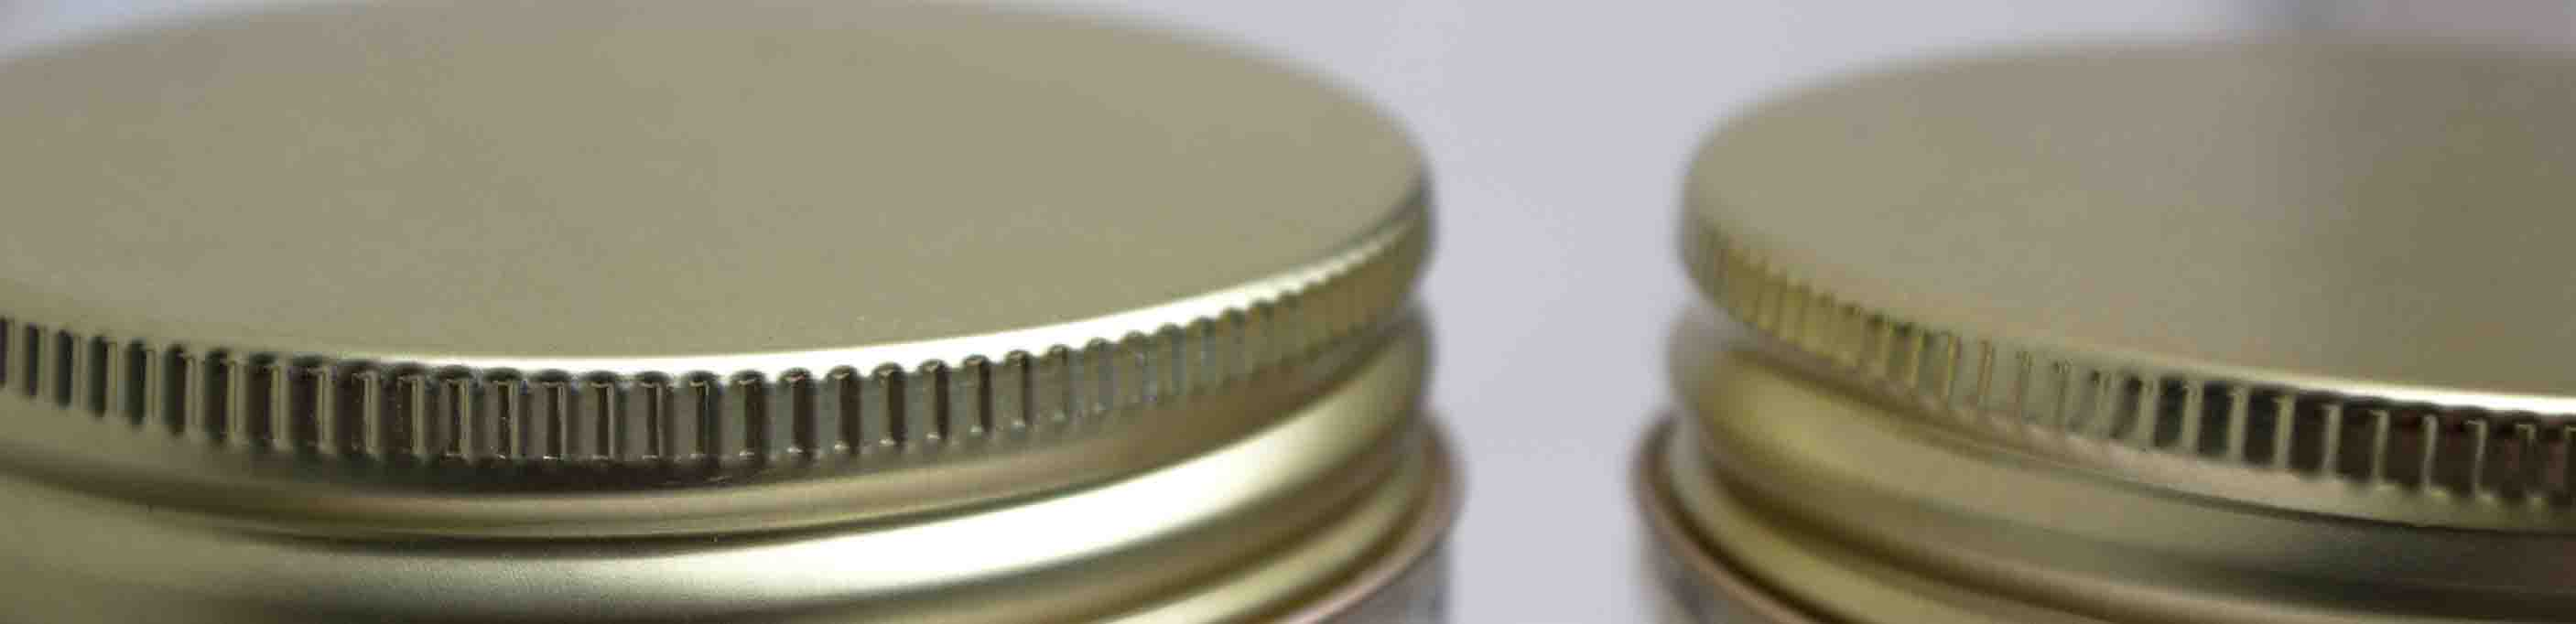 Metal Lids for Candle Jars - 38 - 400